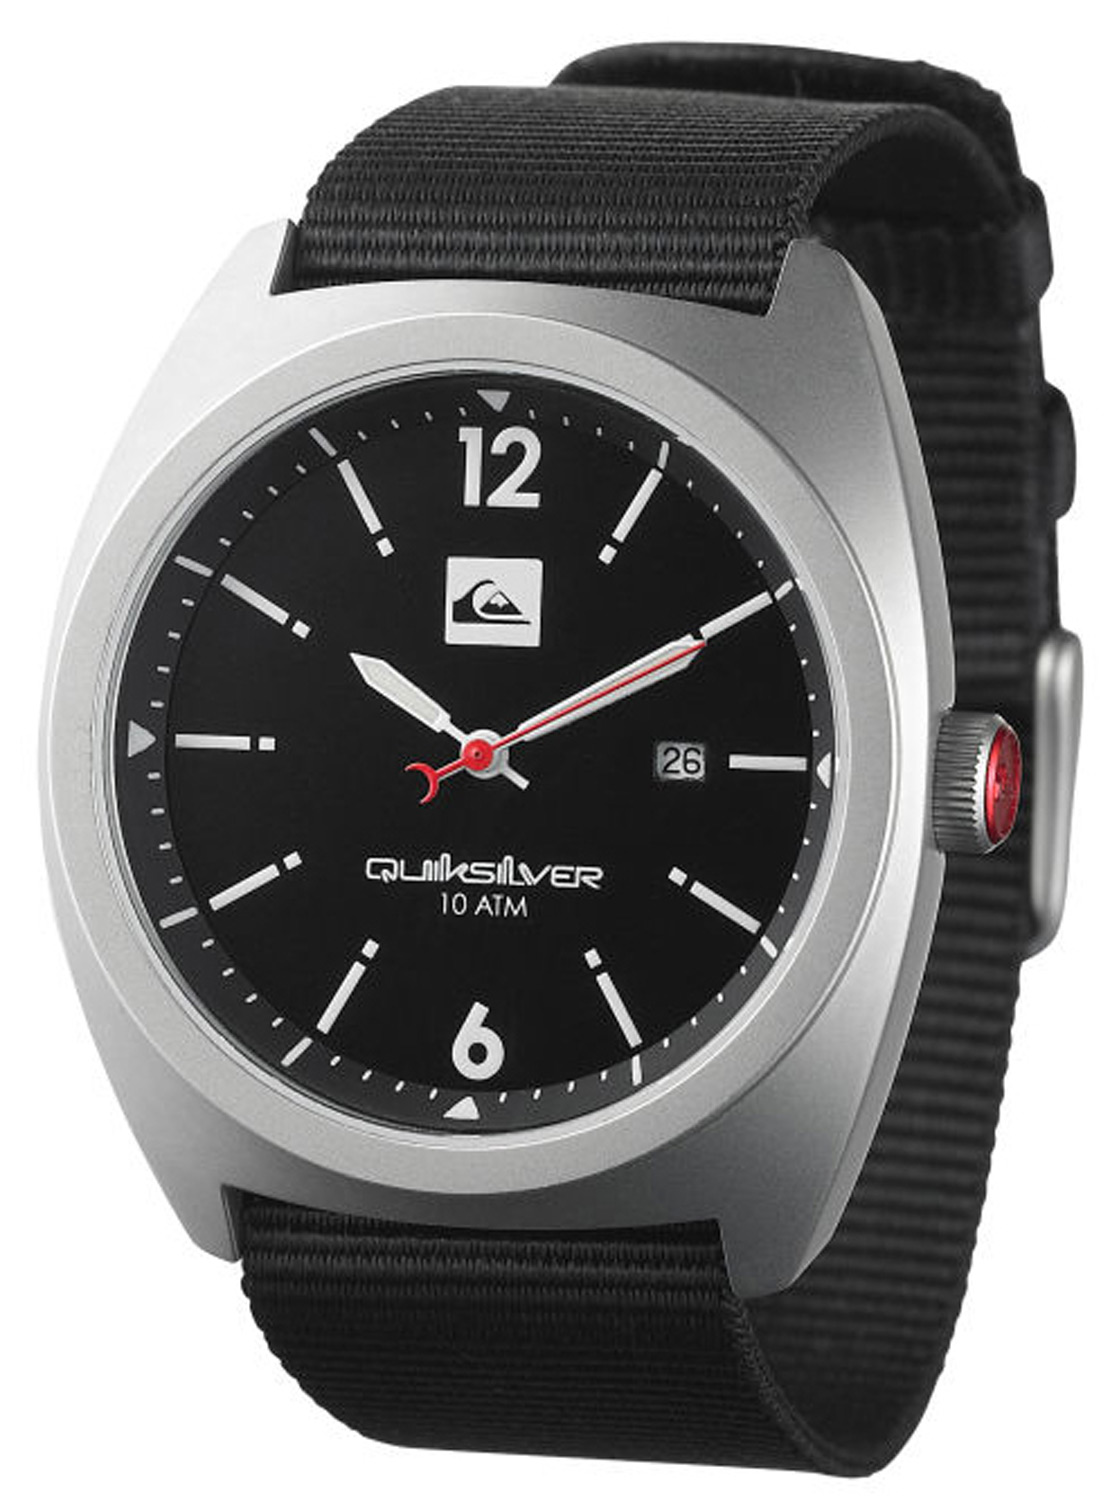 Surf Key Features of the Quiksilver Brigadier Watch: Marine grade solid stainless steel case Marine grade solid stainless steel screw down caseback Reinforced mineral crystal Japanese 3 hand quartz analog movement with date Nylon webbing strap Marine grade solid stainless steel buckle 10ATM 2 Year warranty Case Size 43mm - $74.95